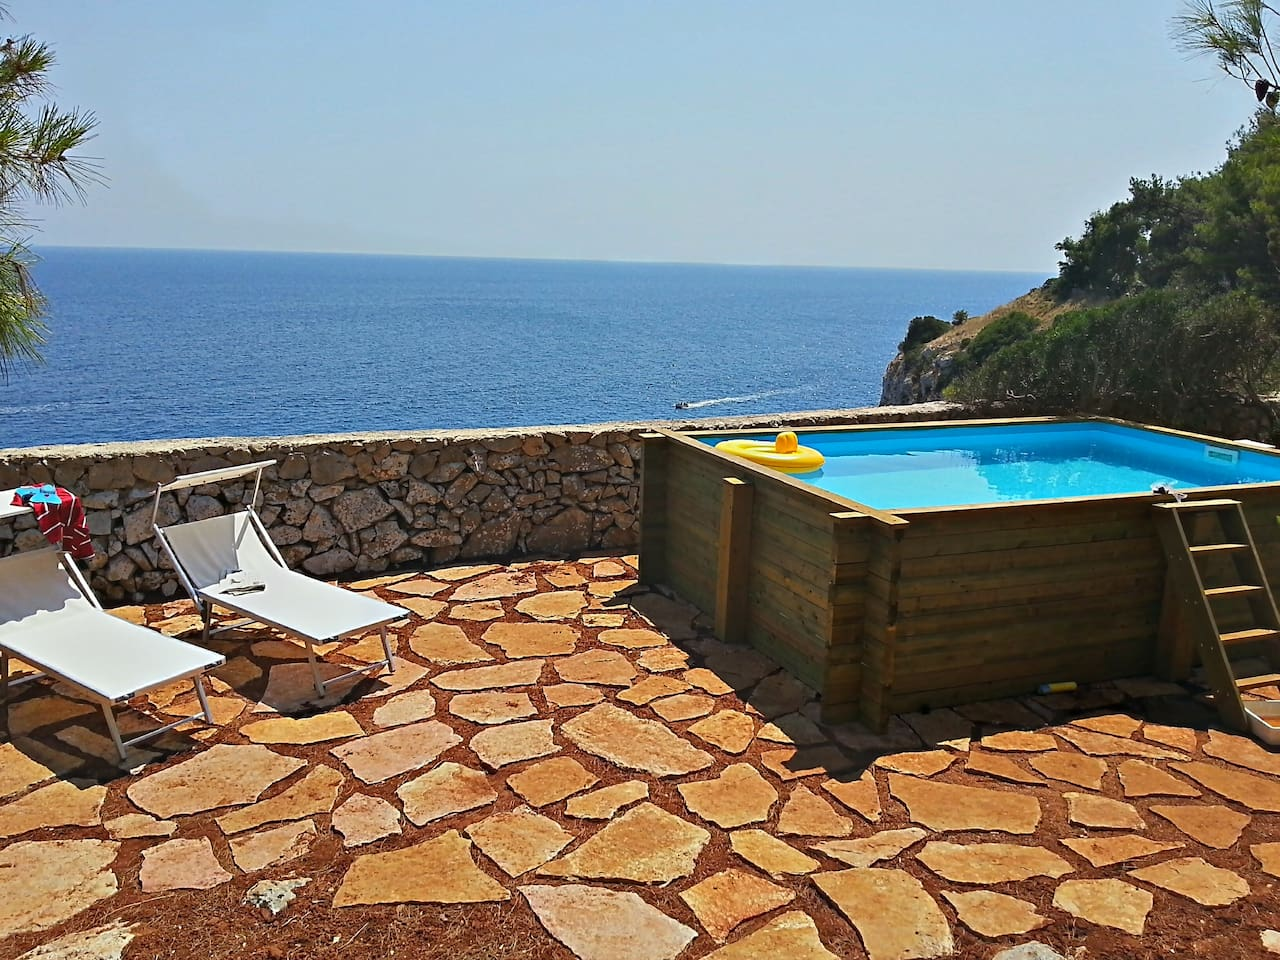 The cliff sea view from the pool